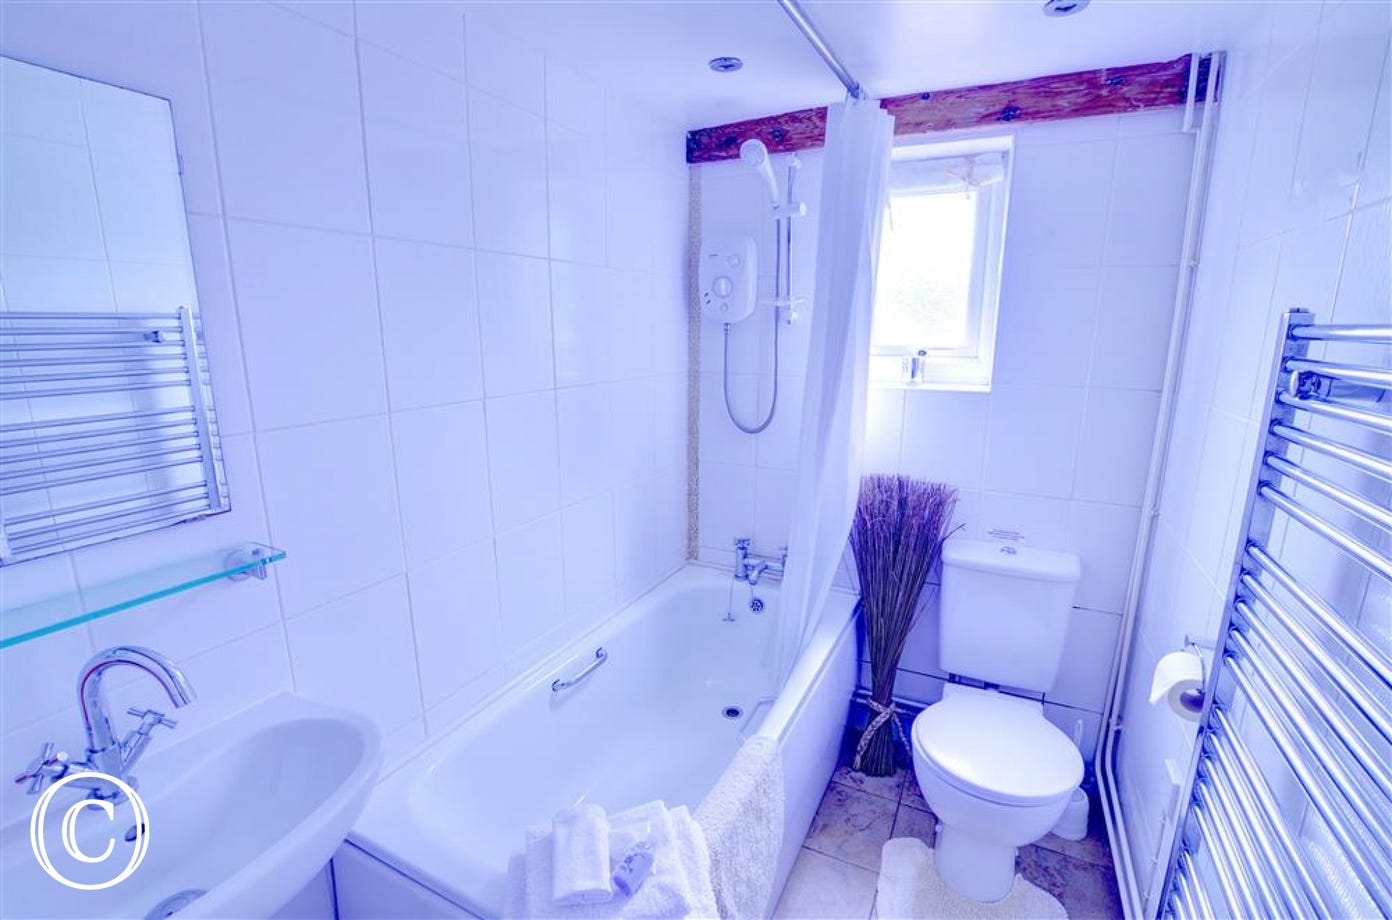 The bathroom has been refurbished with a clean white suite with modern fittings